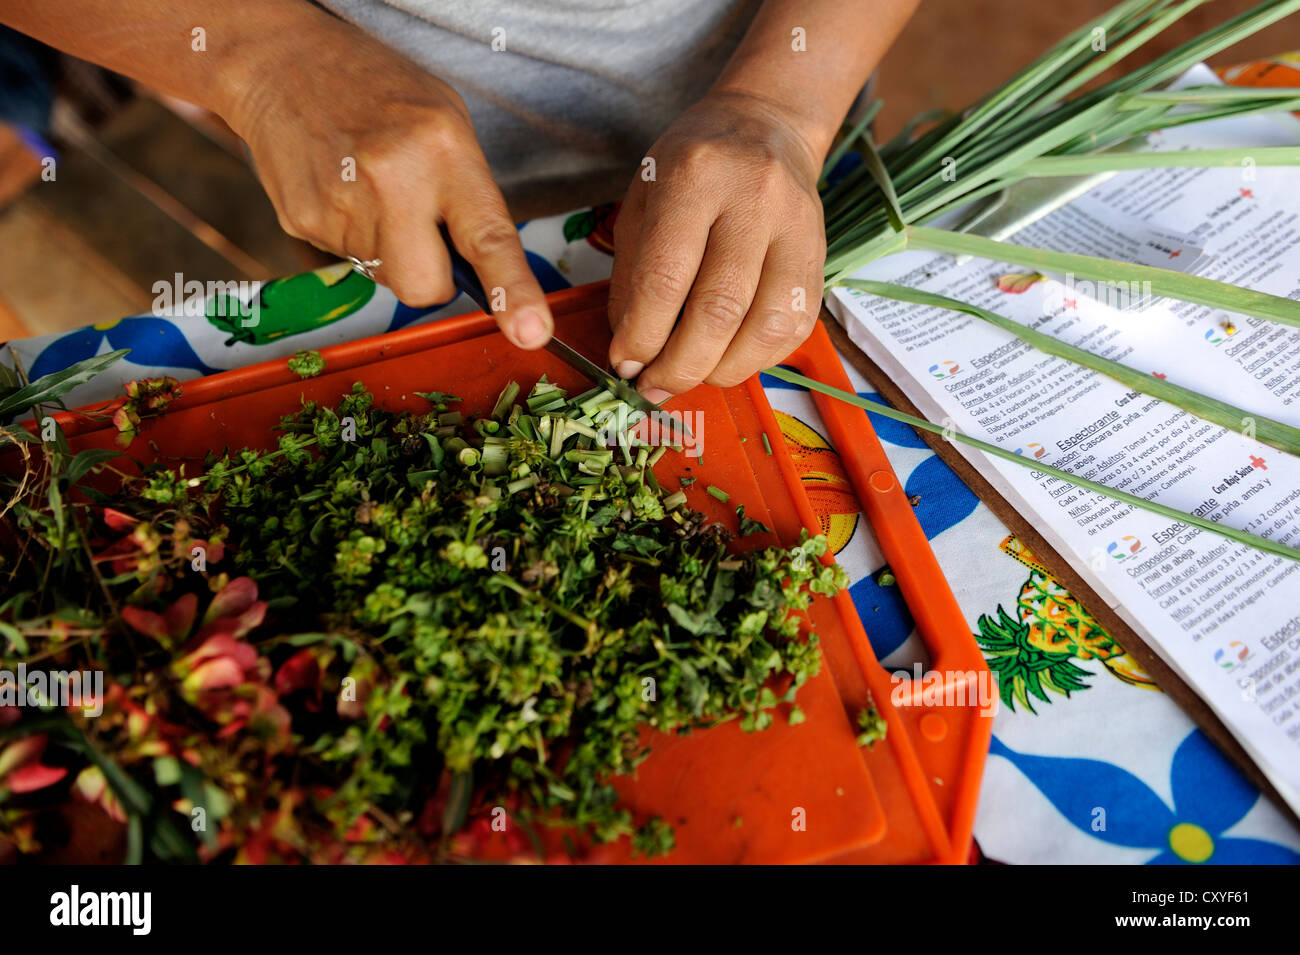 Woman cuting herbs from the village's garden for medicinal plants for making natural medicine, Comunidad Vy'a - Stock Image